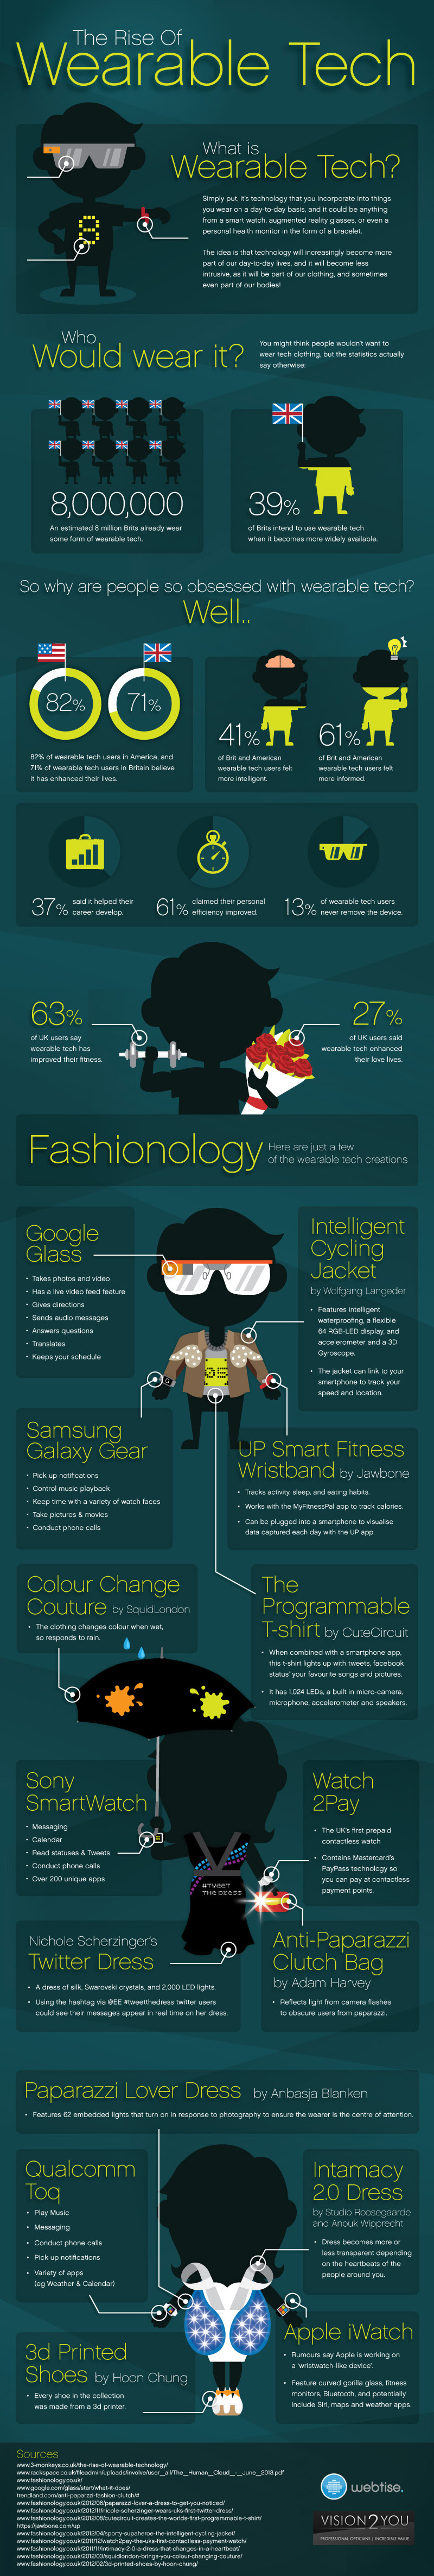 Infographic: The Growth Of Wearable Technology, The rise of wearable tech